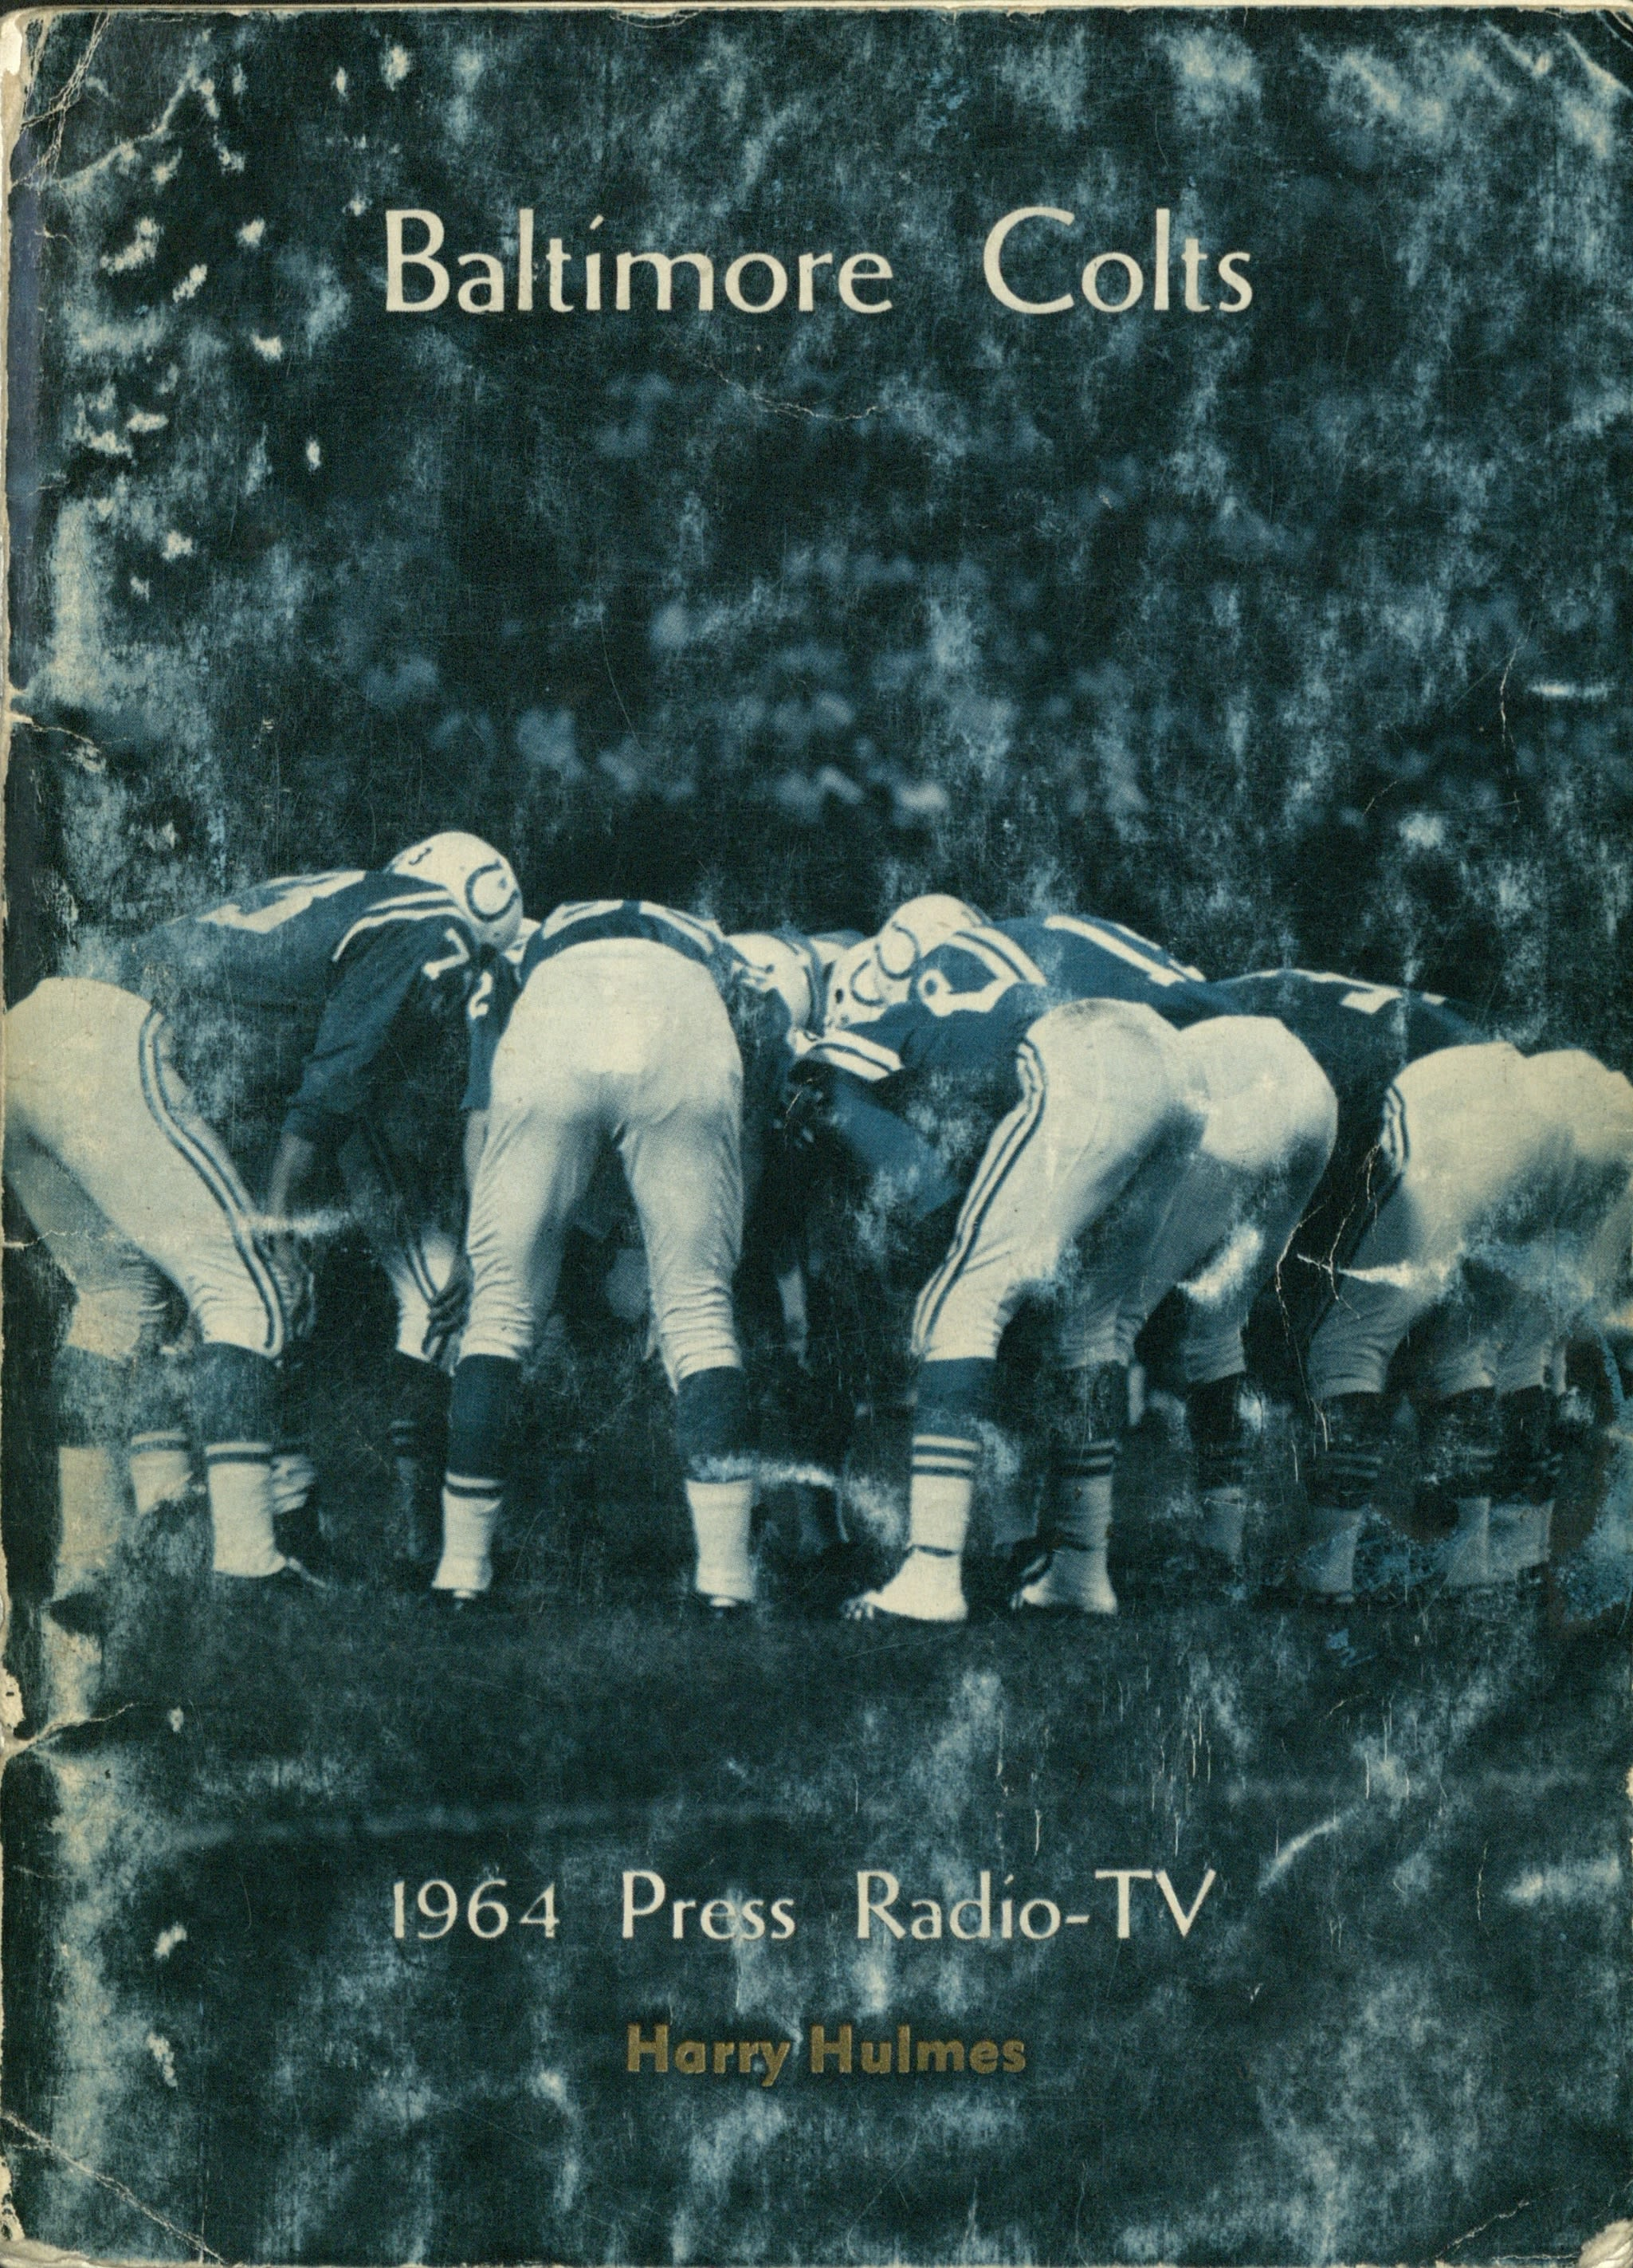 COLTS_1964_Cover